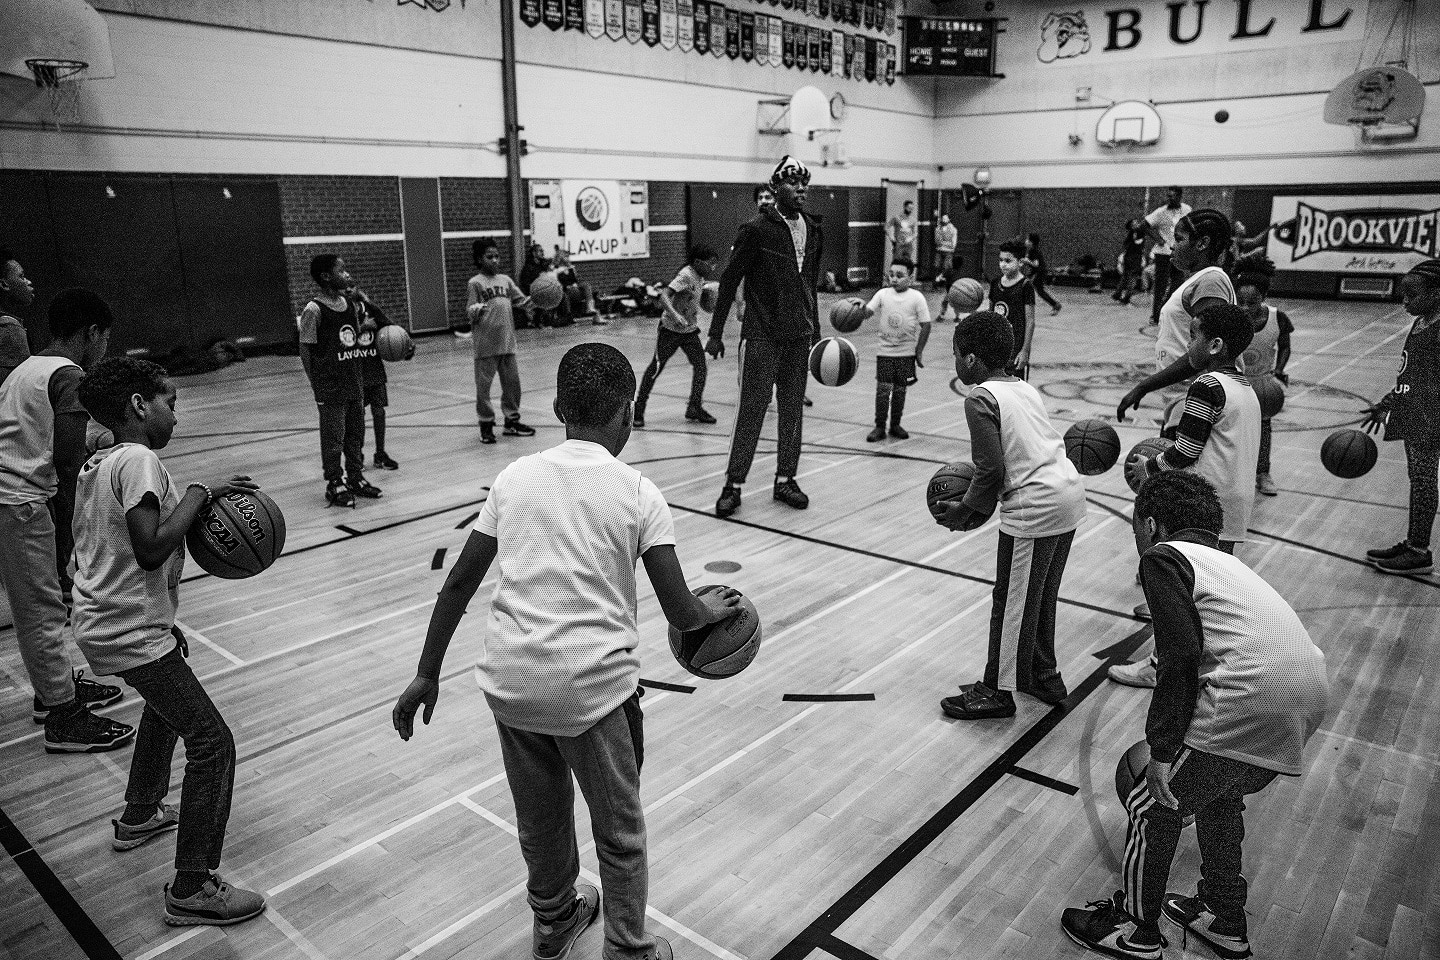 Lay-Up reimagines physical activity amidst pandemic - Images courtesy of Lay-Up